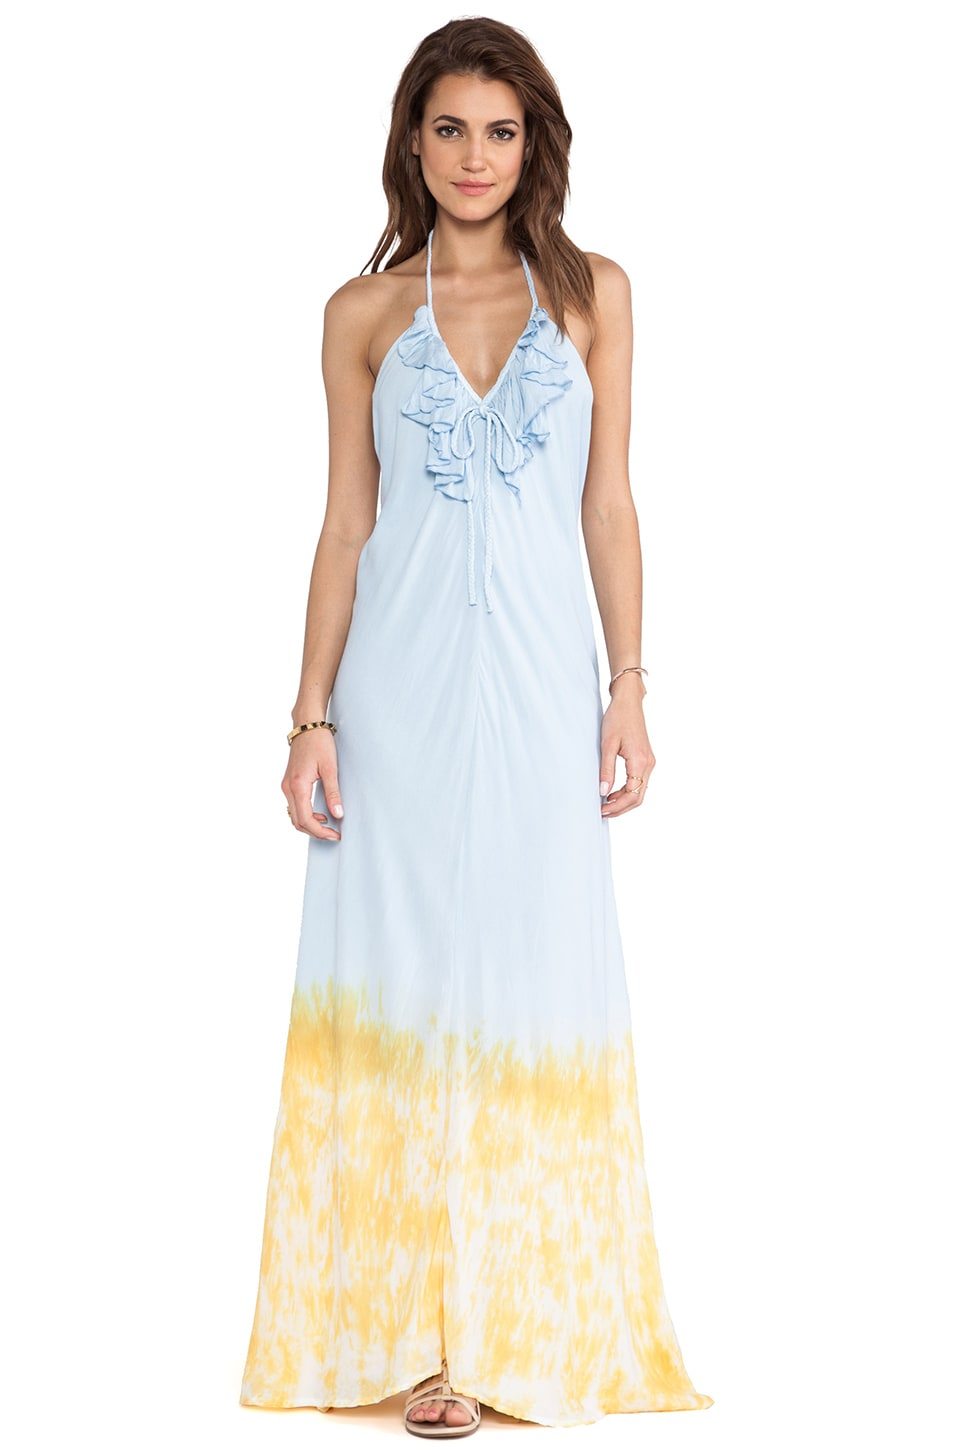 Tiare Hawaii Aries Deep Sea Maxi Dress Tie Dye in Sky & Blue